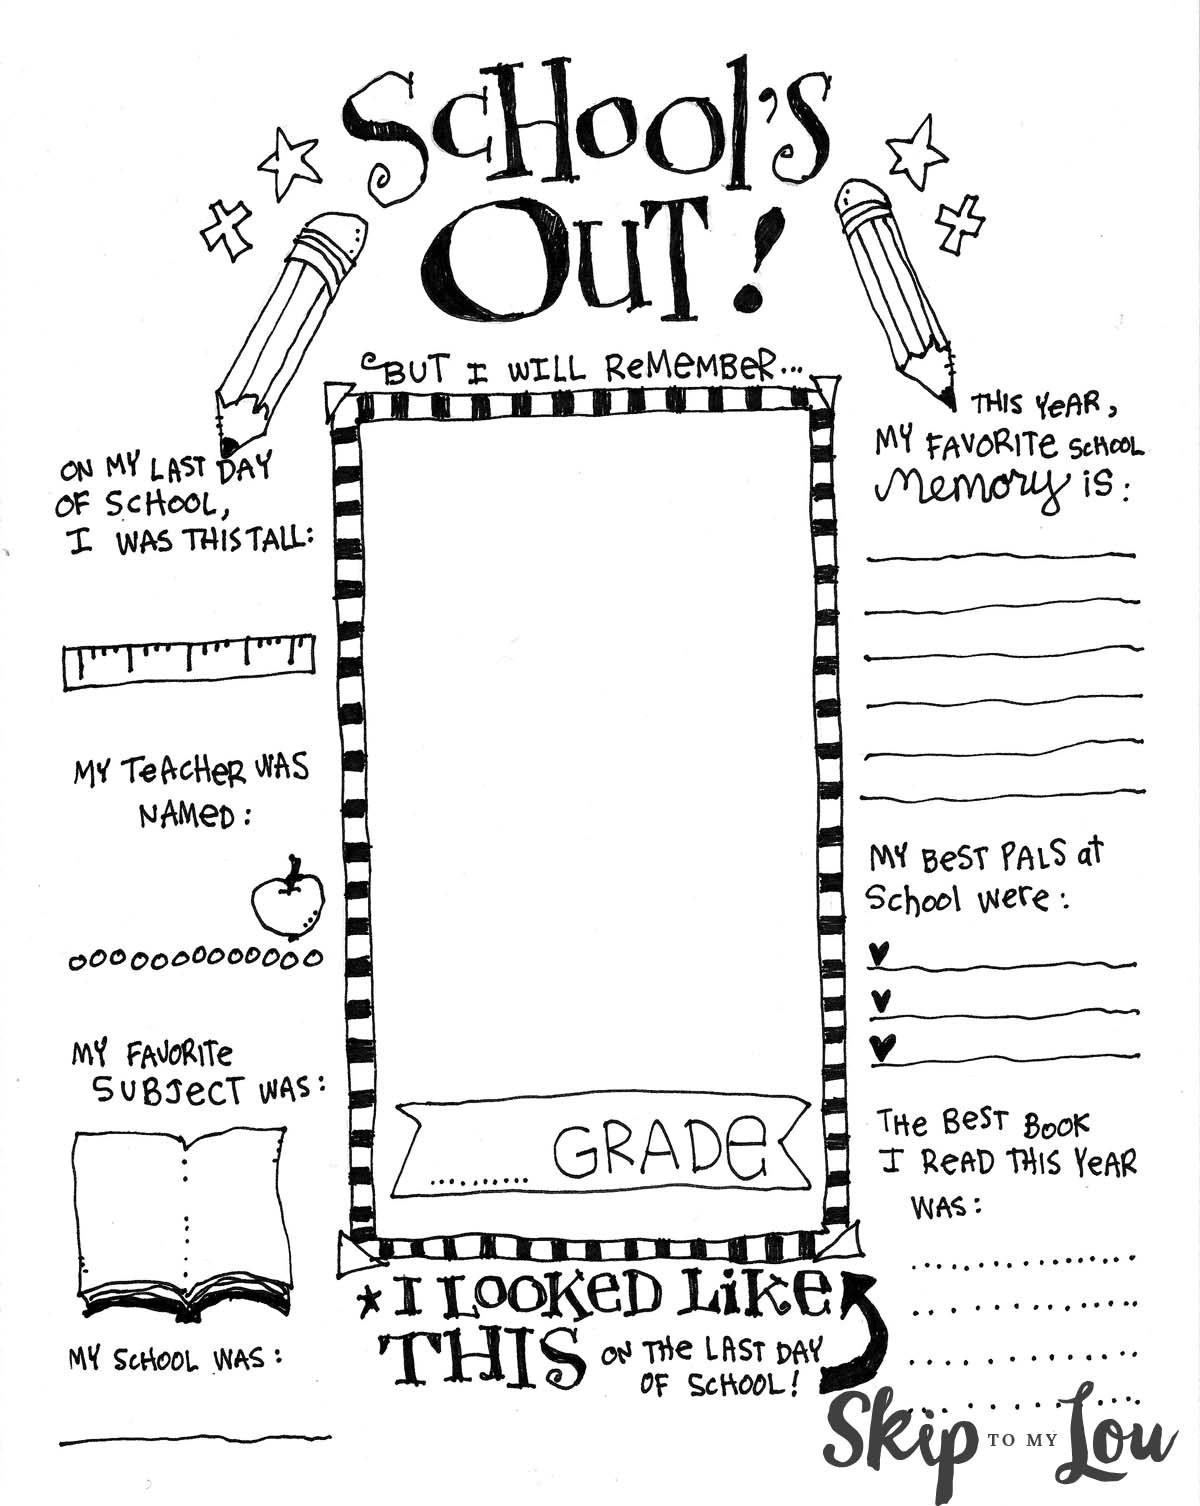 Exceptionnel End Of School Memory Printable Records The School Year And Is A Great End  Of School Year Activities. Enjoy This Free Last Day Of School Memory Page.